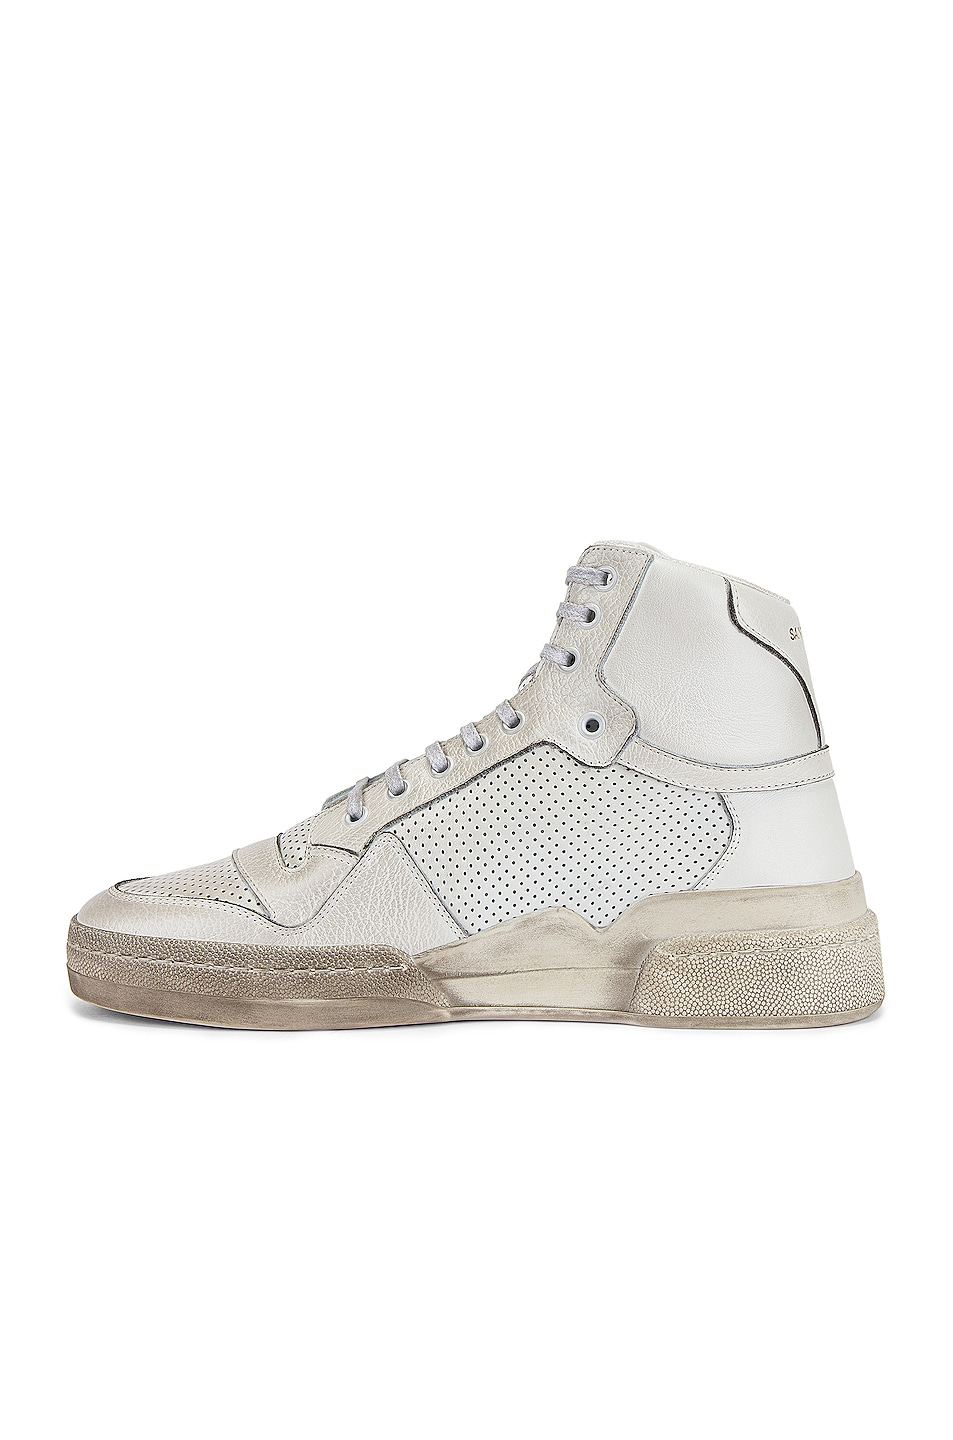 Image 5 of Saint Laurent SL24 Hi Top Sneaker in White